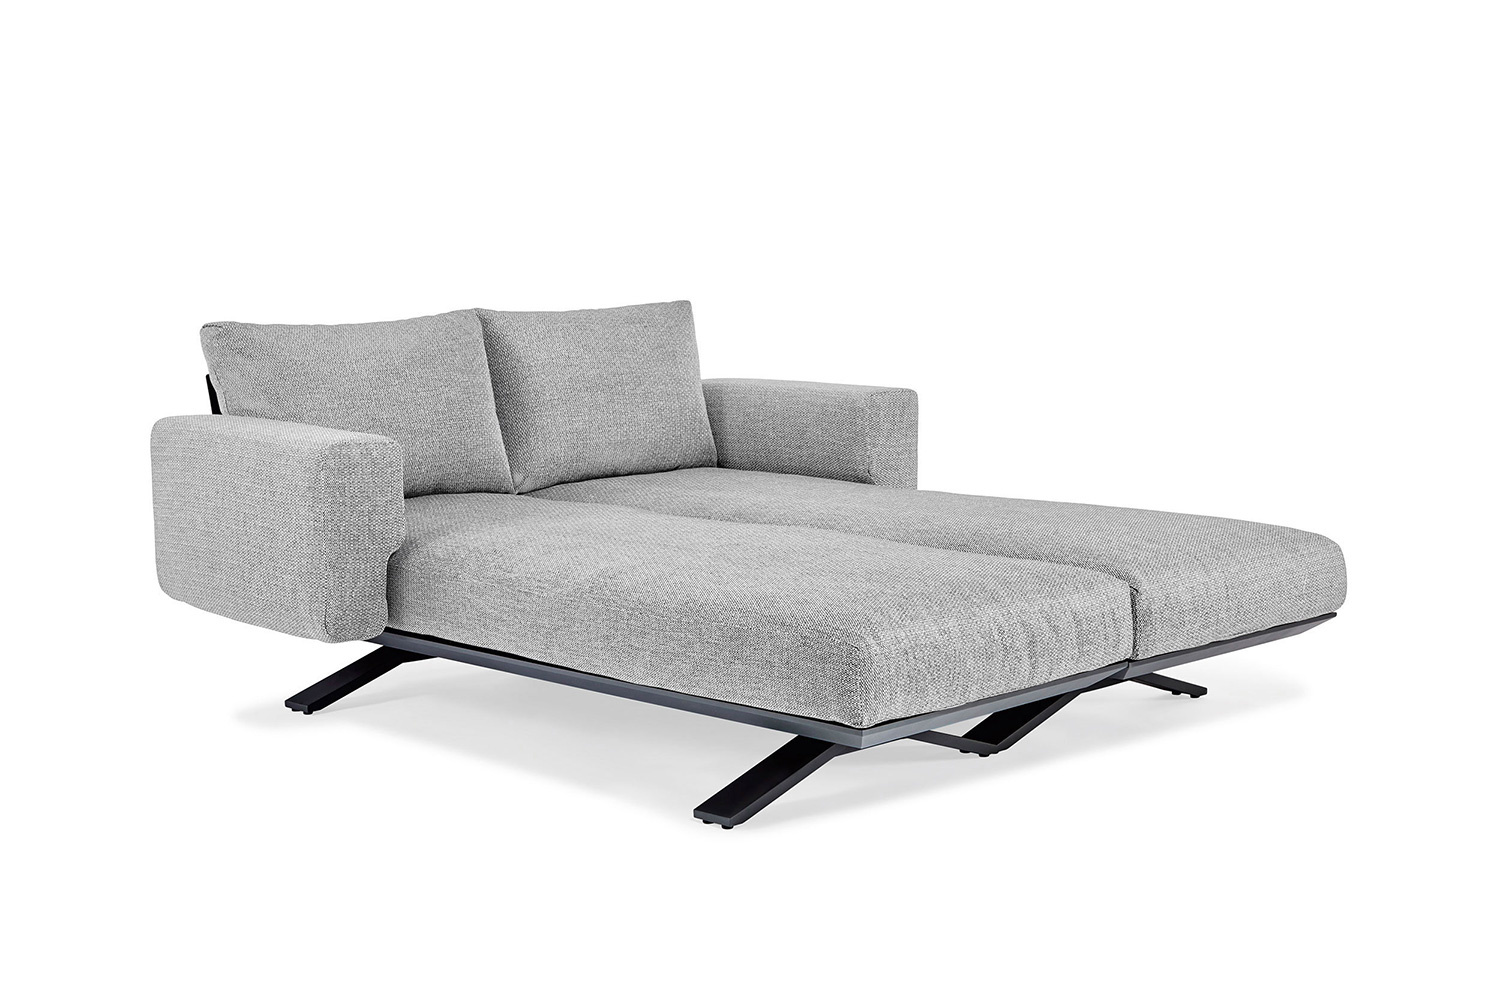 SUNS tuinmeubelen Stockholm Daybed  Matt Royal Grey frame